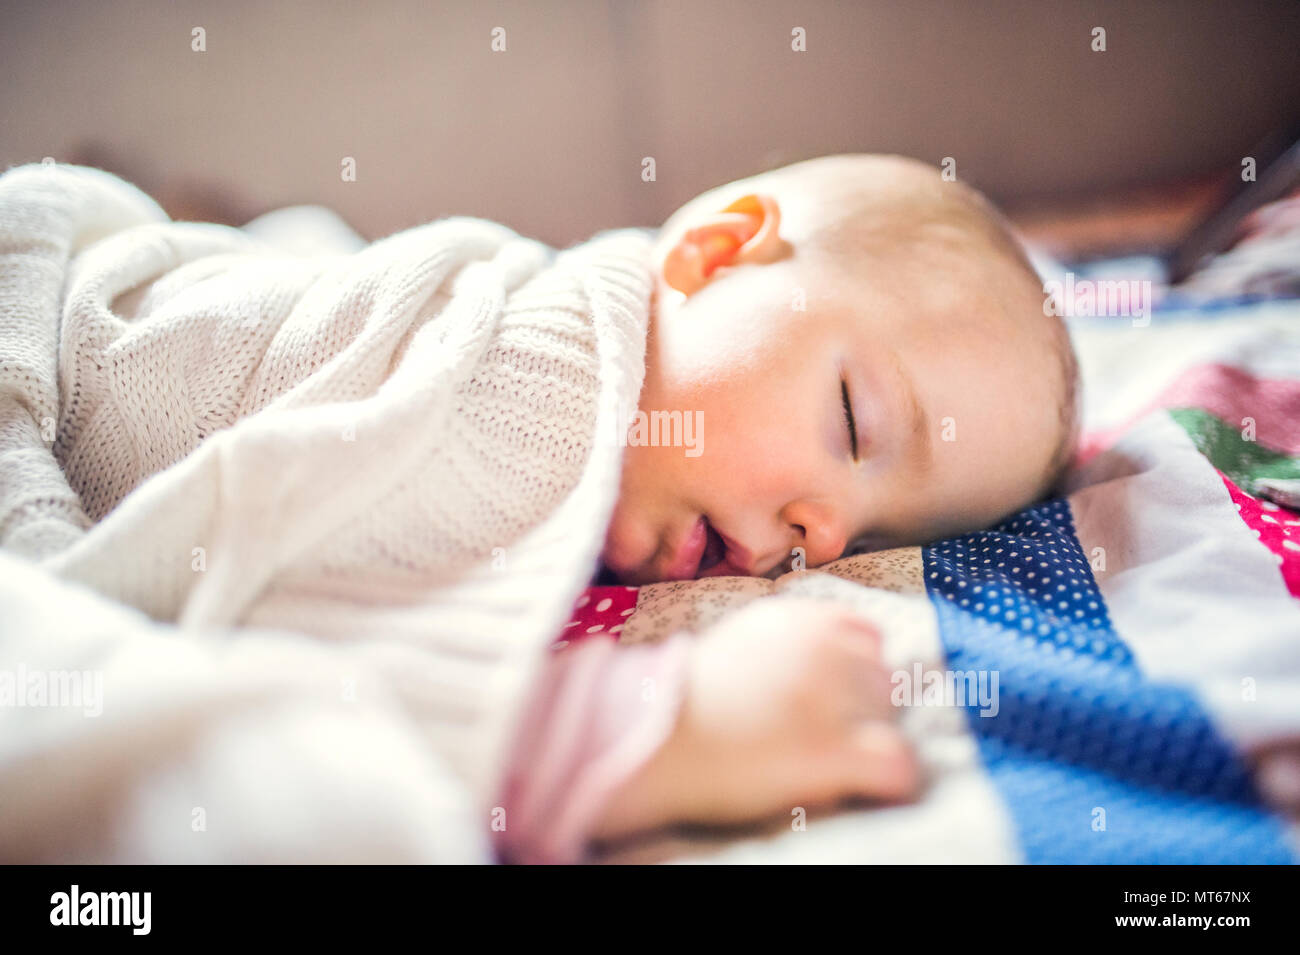 A toddler girl sleeping on a bed at home. - Stock Image